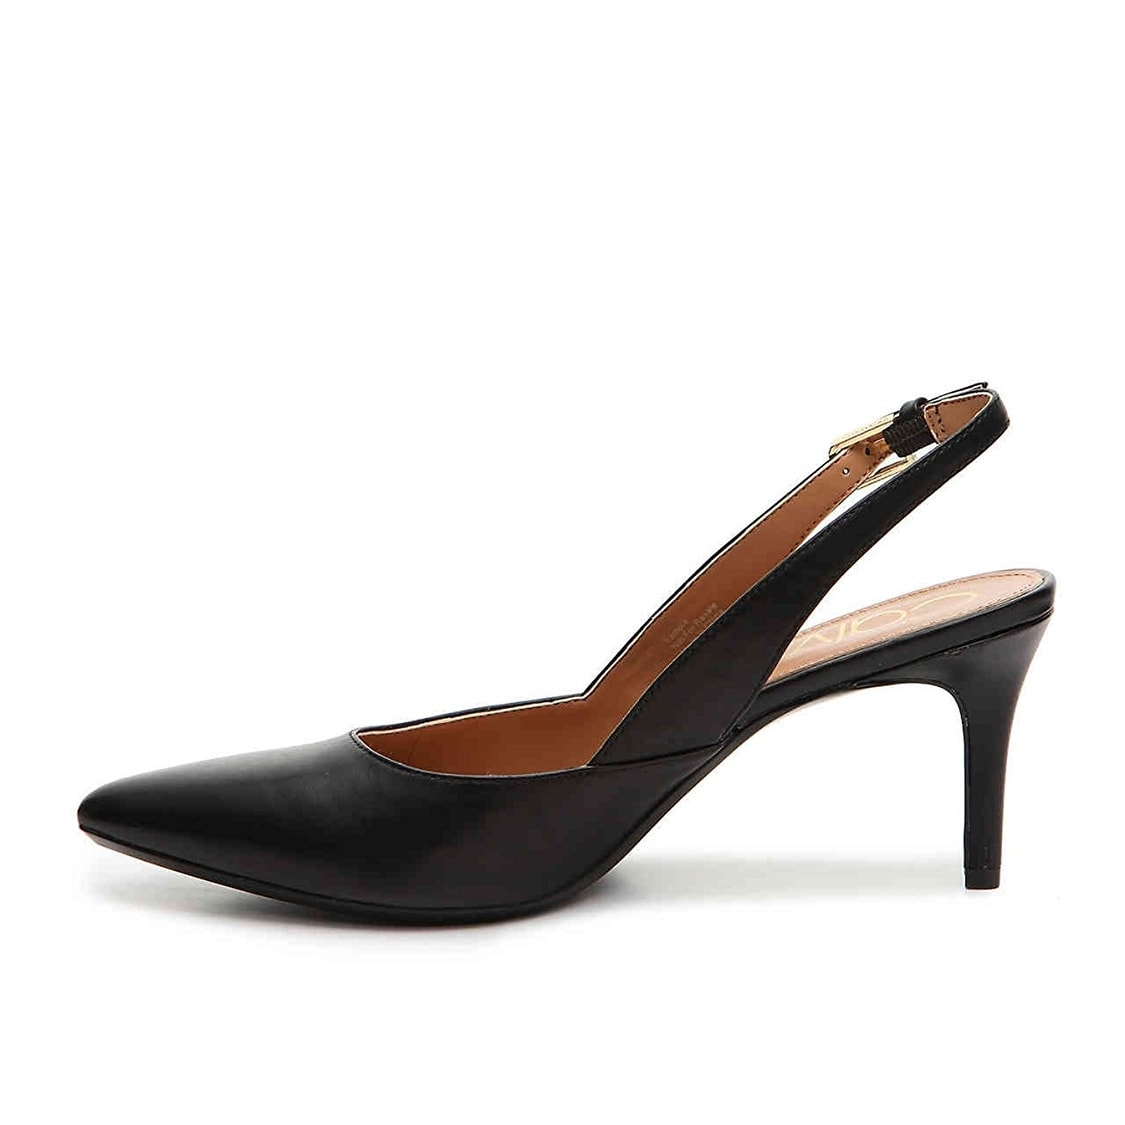 2b06dc8ad54 Shop Calvin Klein Womens Giona Leather Pointed Toe SlingBack Classic Pumps  - Free Shipping Today - Overstock - 22254170